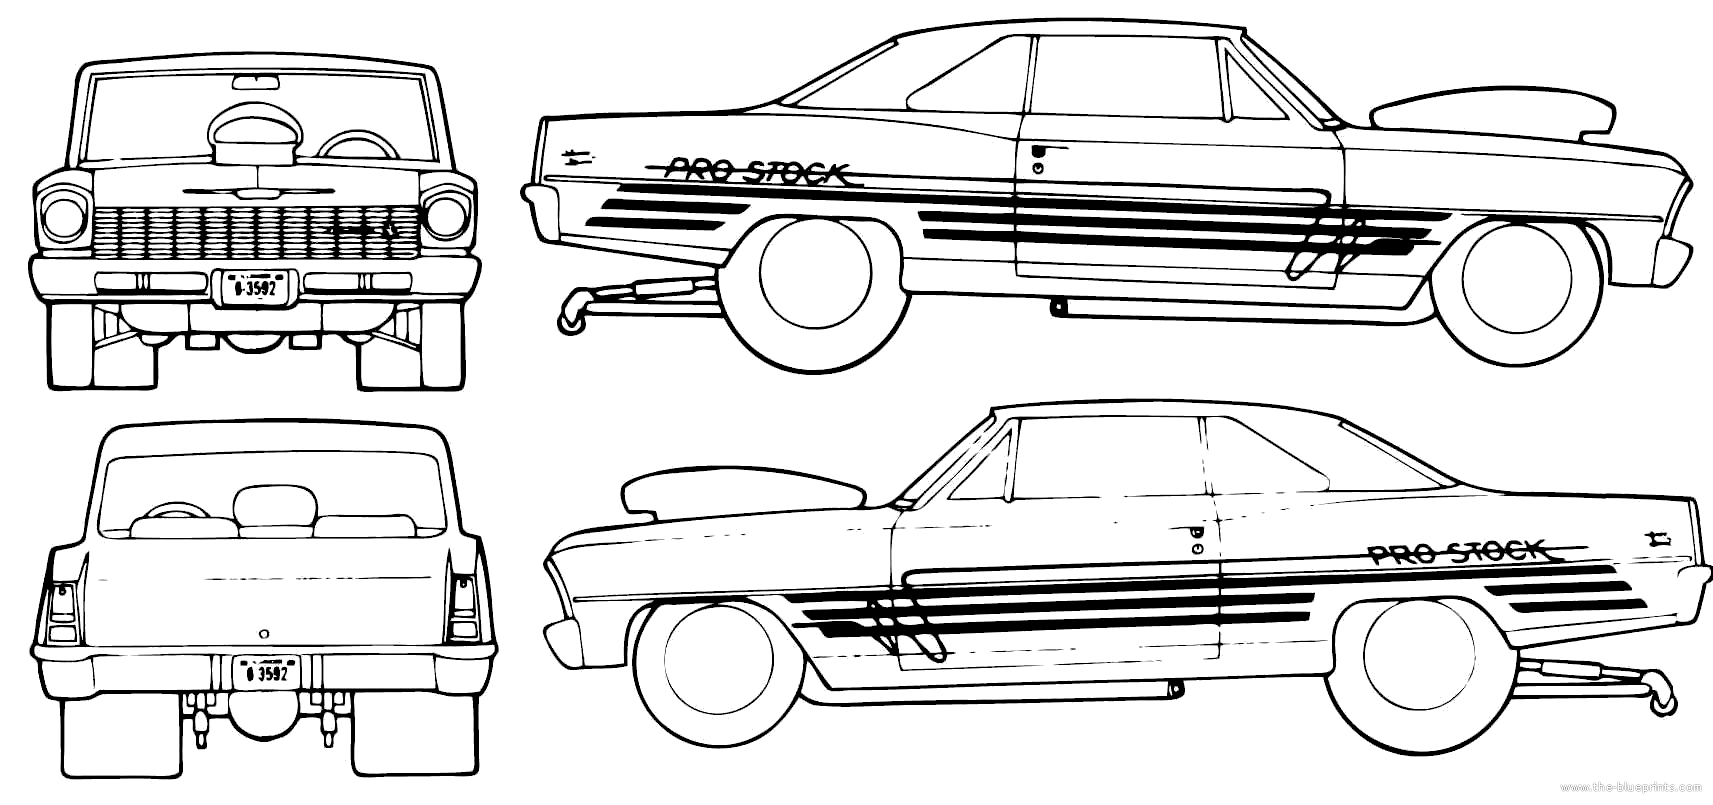 1966 chevrolet nova pro street coupe blueprints free